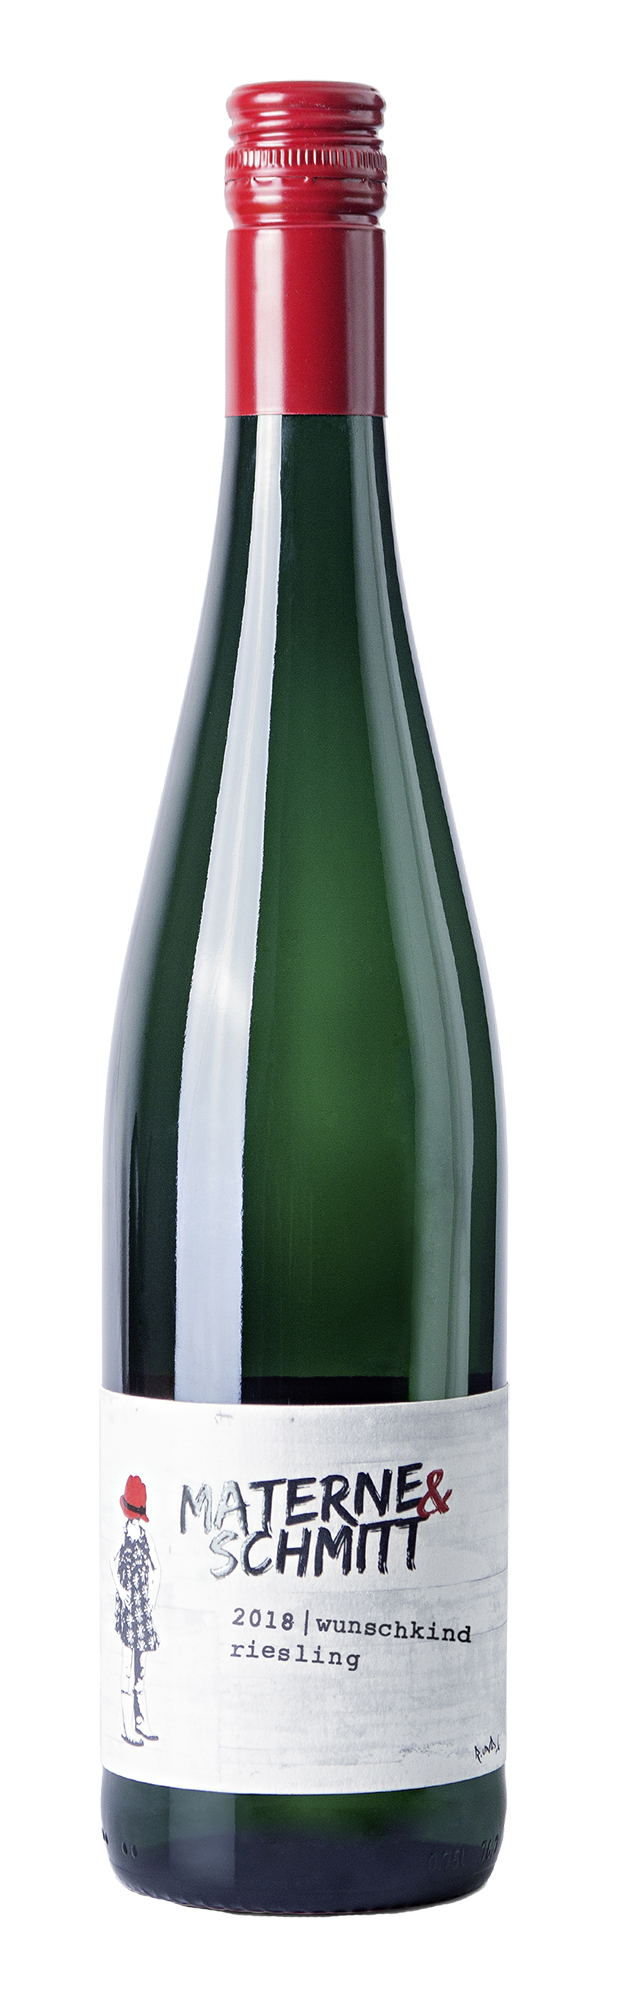 Wunschkind Riesling QbA